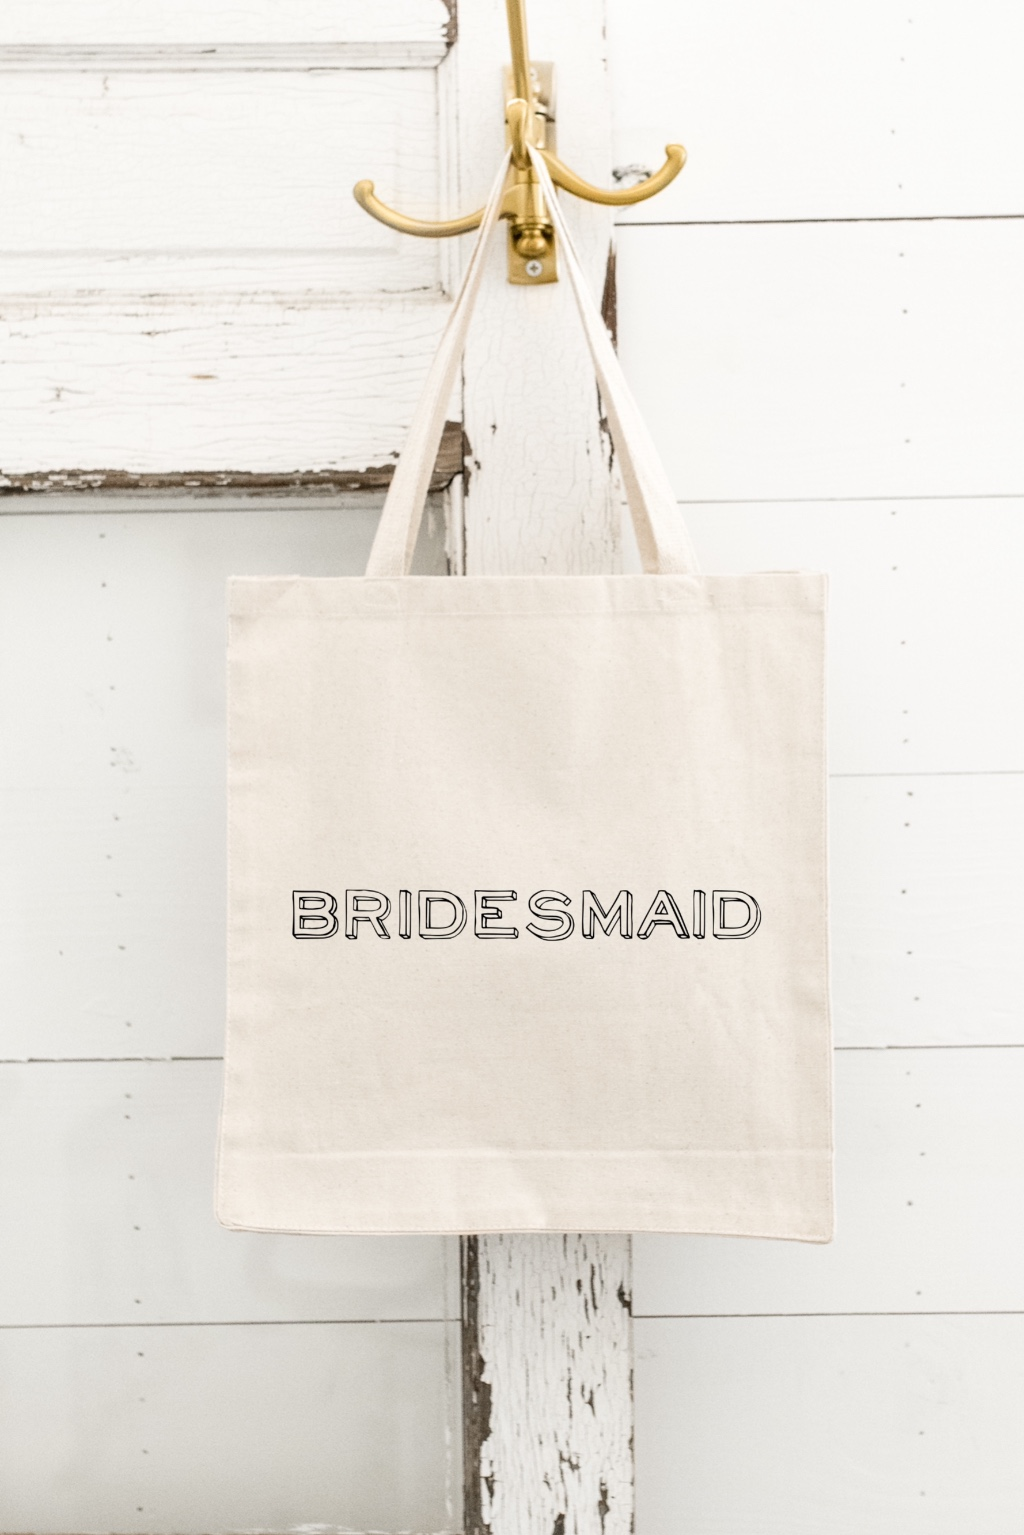 Our BRIDESMAID Tote Bags make the perfect GIFT for your Besties! Hold everything you need for a day at the beach or shopping trip